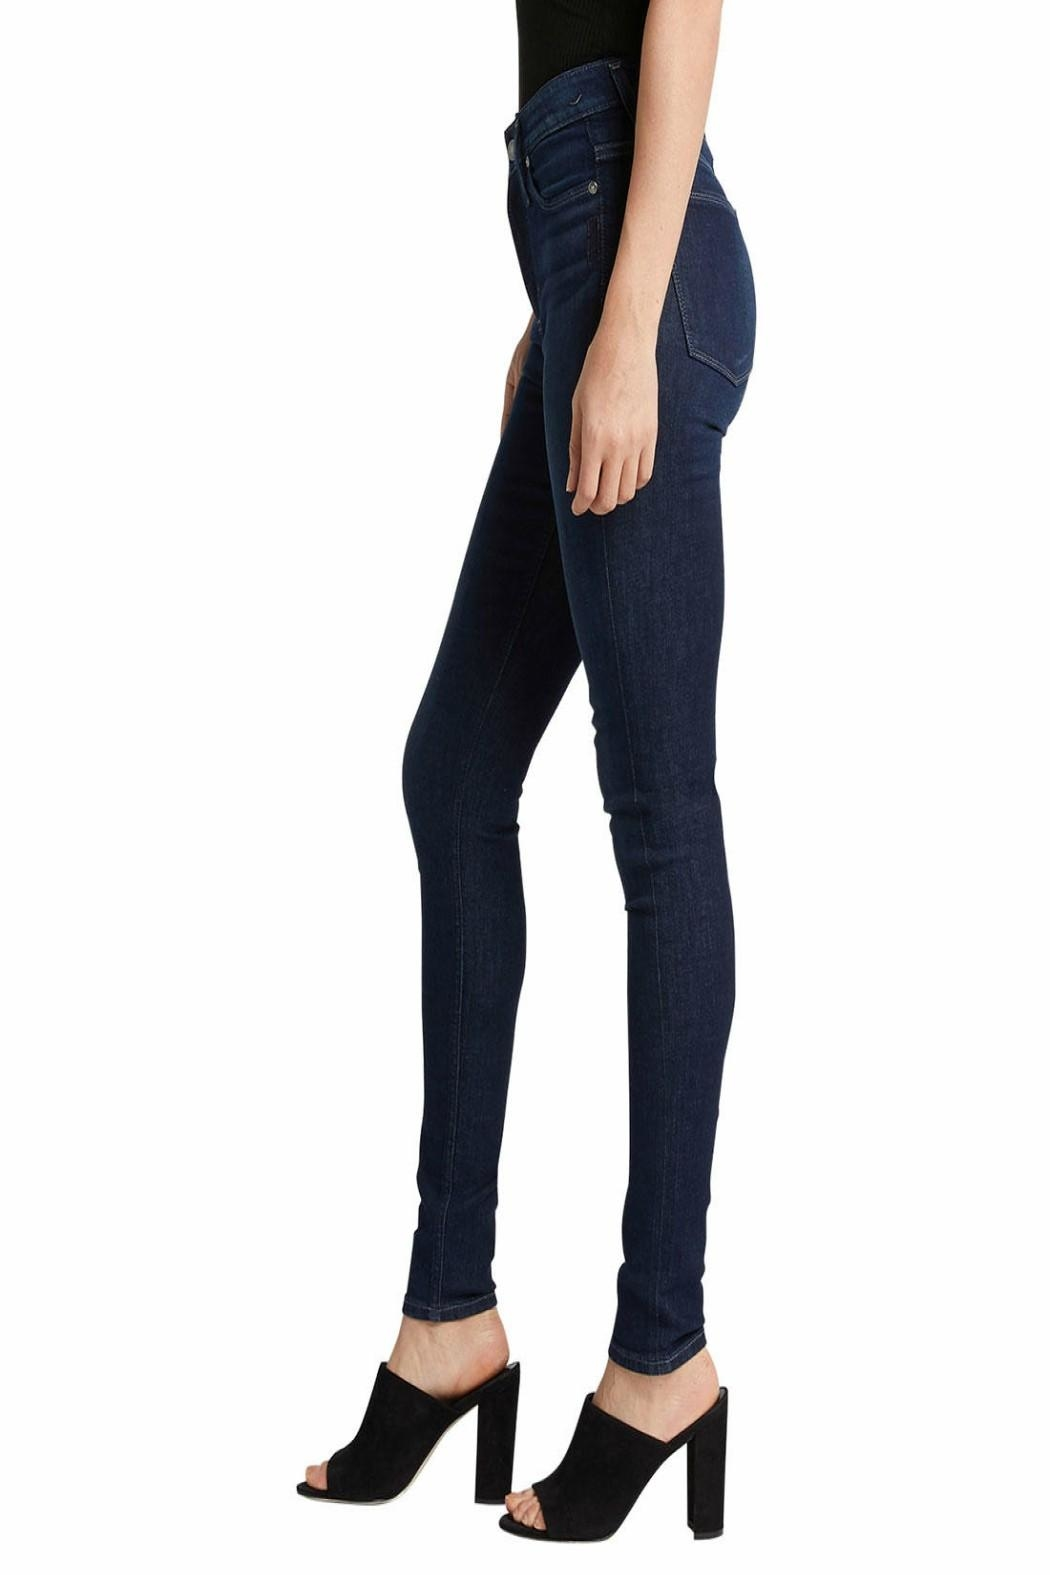 Silver Jeans Co. High-Note High-Rise Skinny - Side Cropped Image